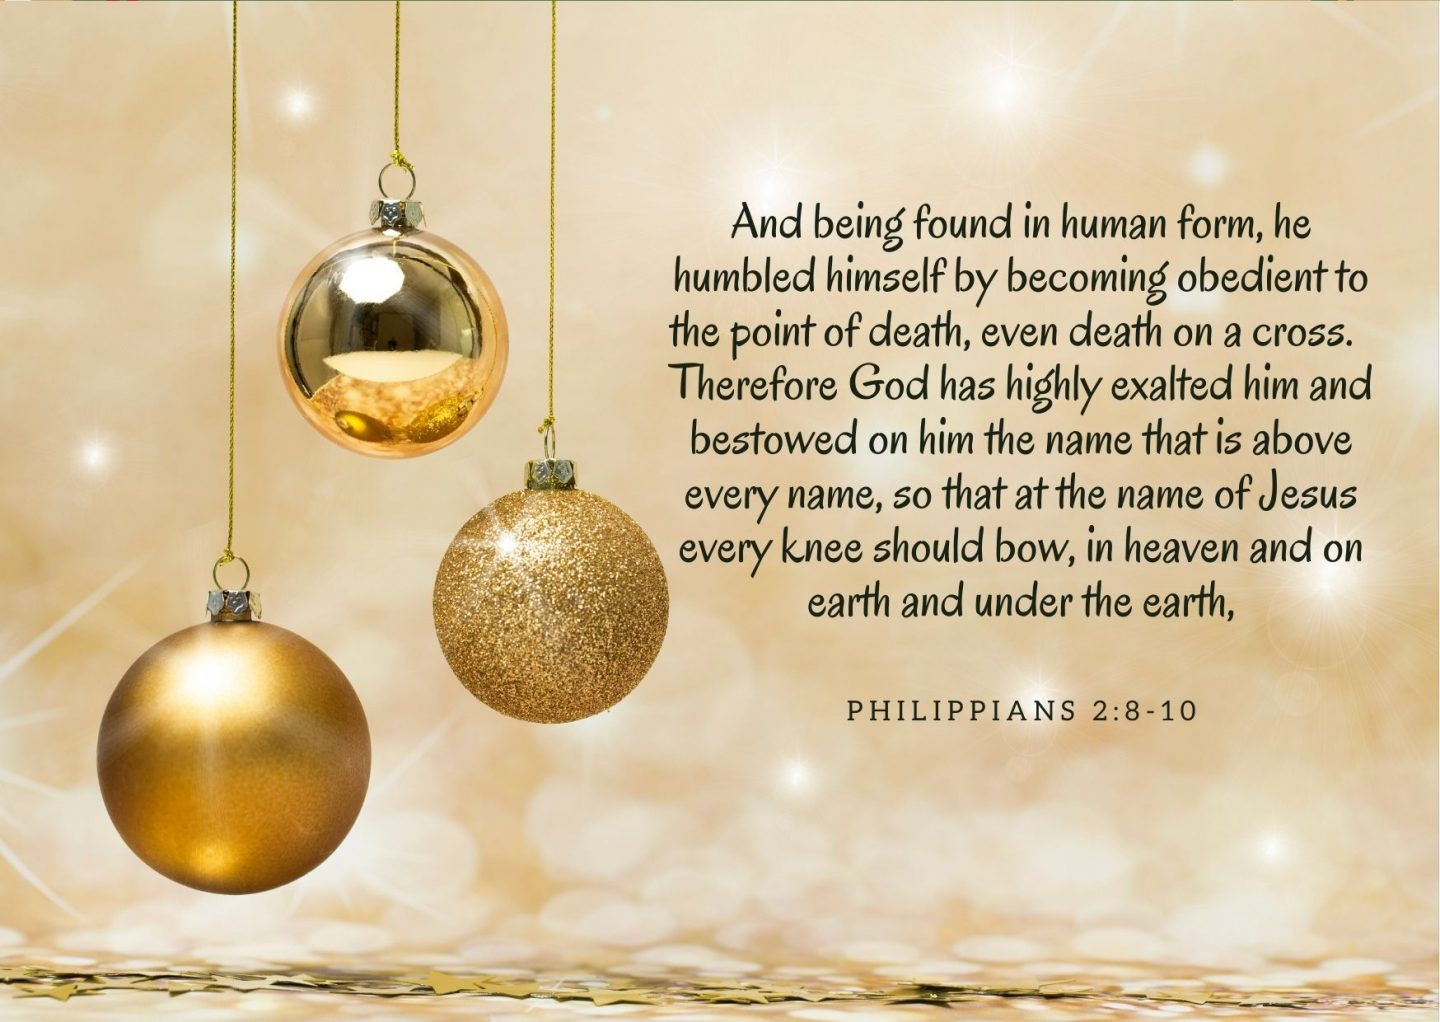 And being found in human form, he humbled himself by becoming obedient to the point of death, even death on a cross. Therefore God has highly exalted him and bestowed on him the name that is above every name, so that at the name of Jesus every knee should bow, in heaven and on earth and under the earth, Philippians 2:8-10